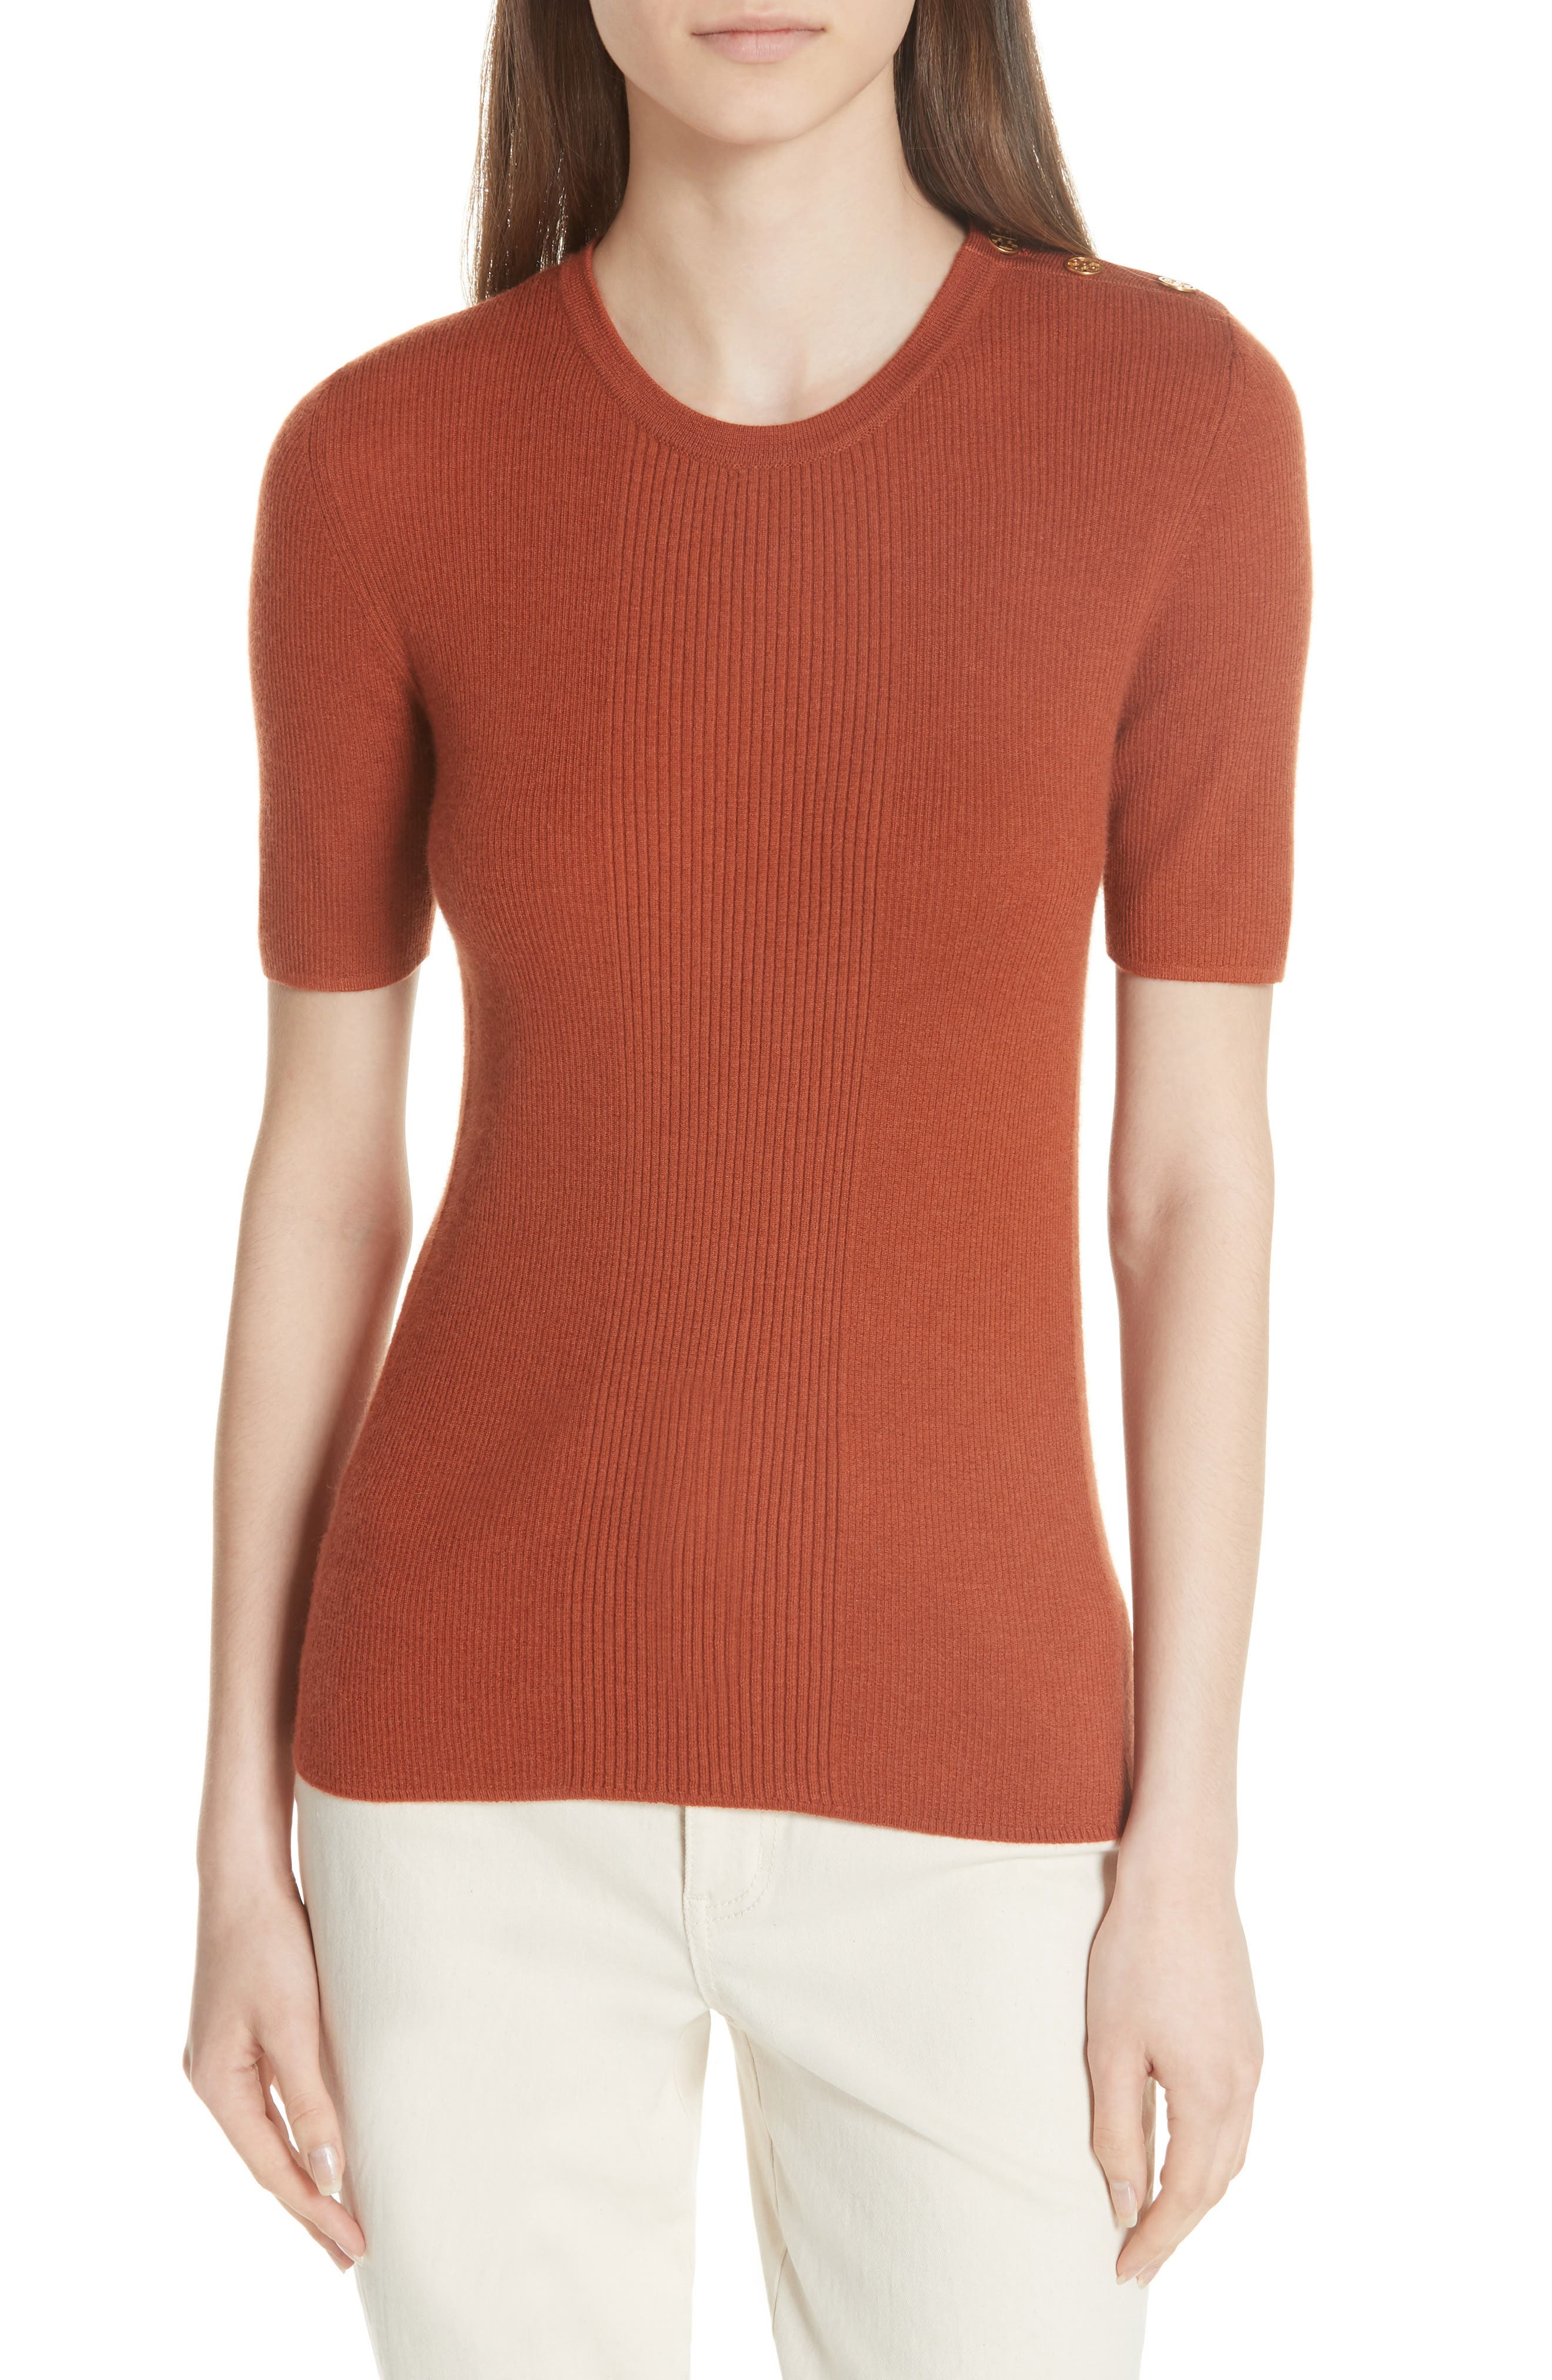 Taylor Ribbed Cashmere Sweater,                         Main,                         color, DESERT SPICE